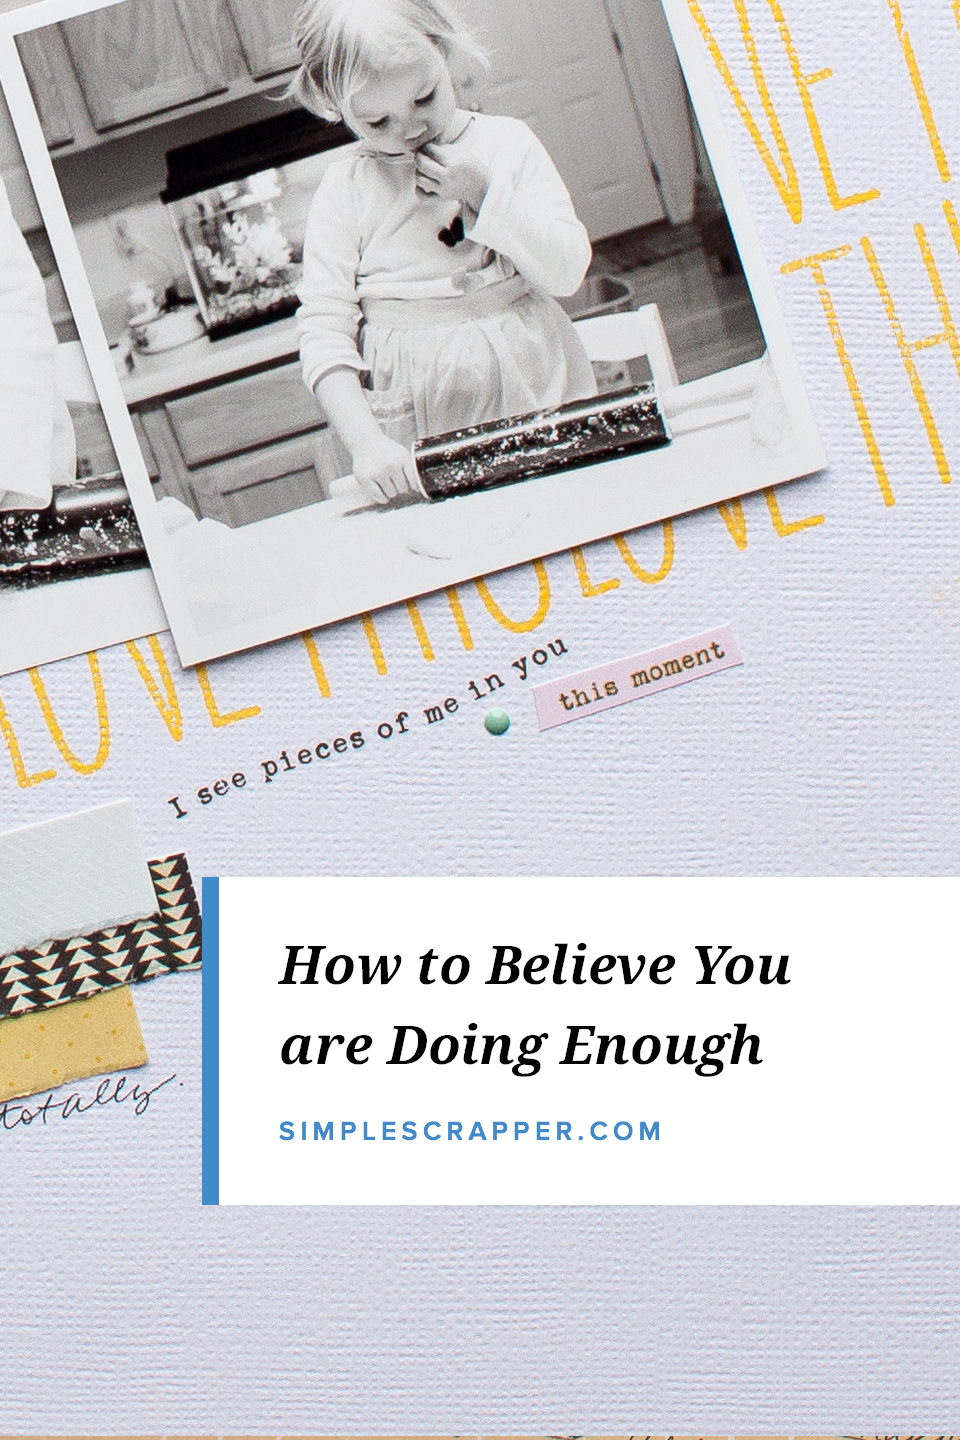 How to Feel Truly Content with Your Scrapbooking Progress